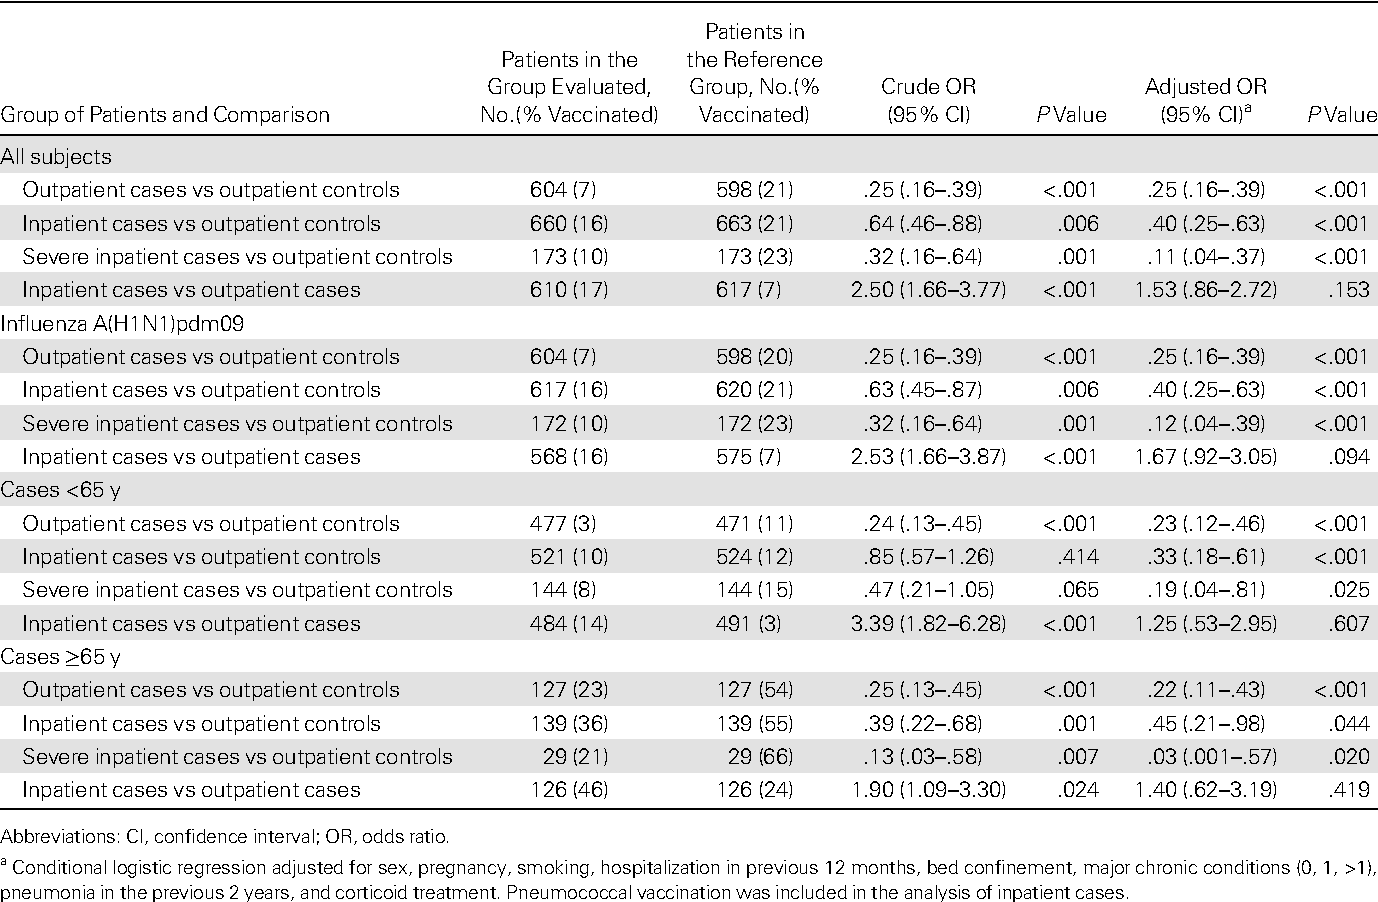 Table 2. Analysis of the Effectiveness of the Influenza Vaccine in Preventing Hospitalizations or Outpatient Visits due to LaboratoryConfirmed Influenza in the 2010–2011 Season